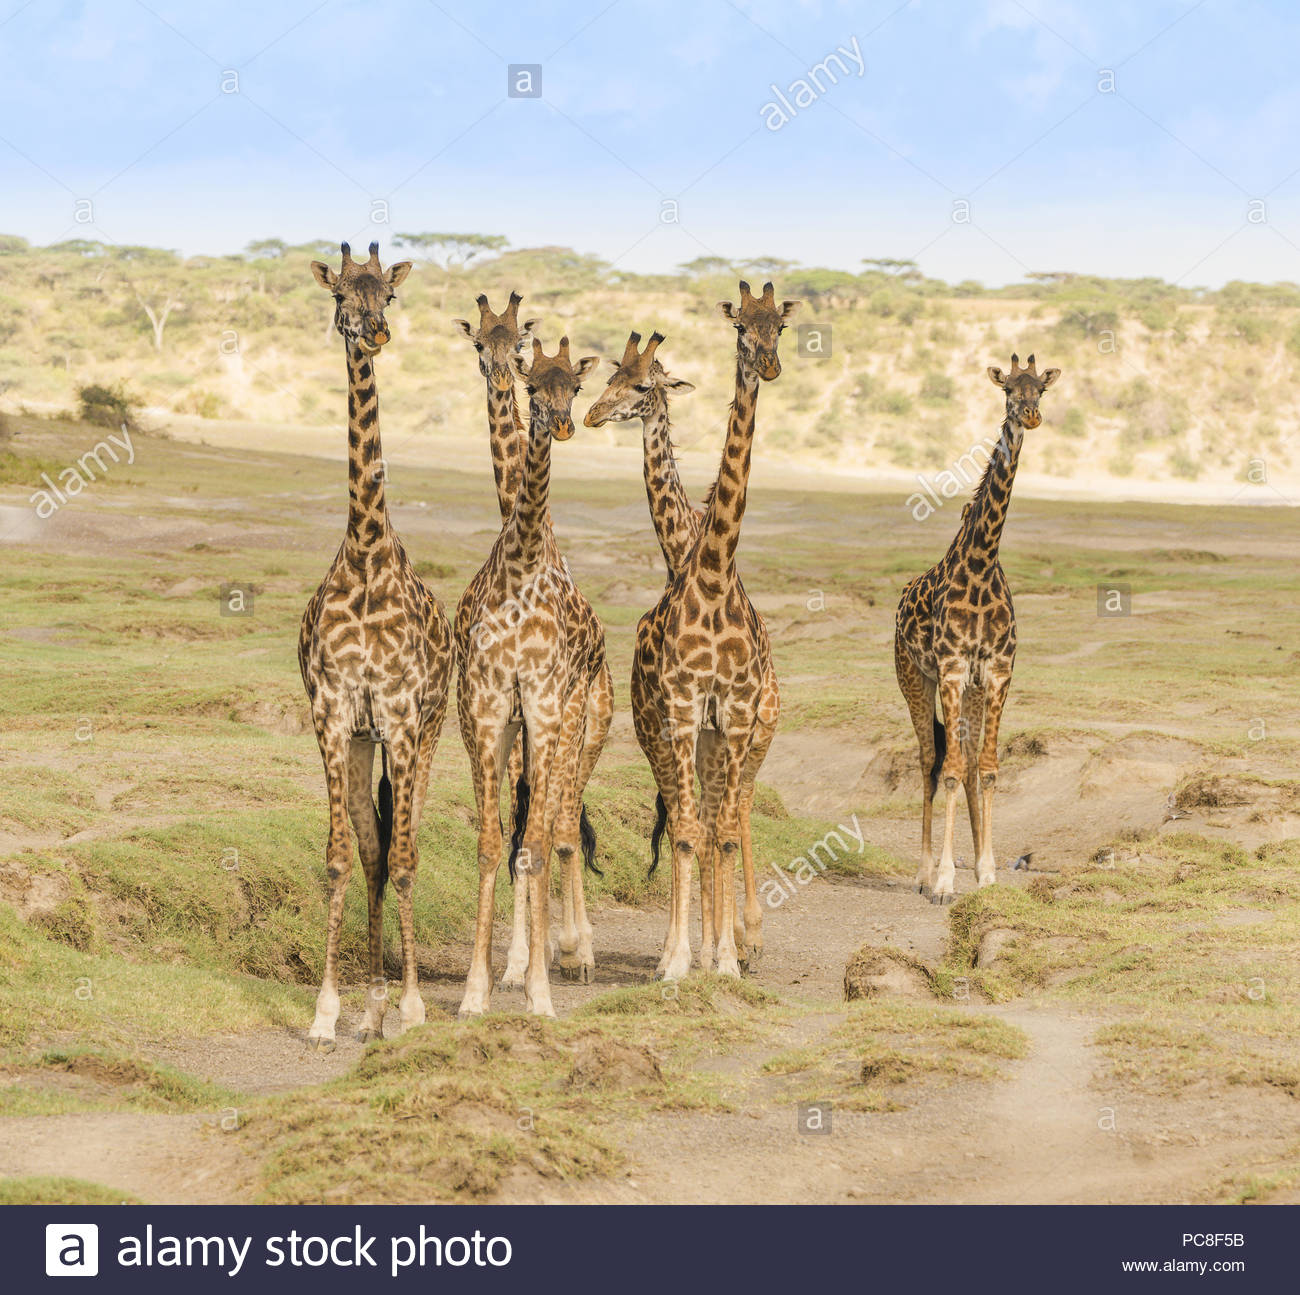 A small herd of six giraffes stop and watch for any threats as they approach their watering hole. - Stock Image